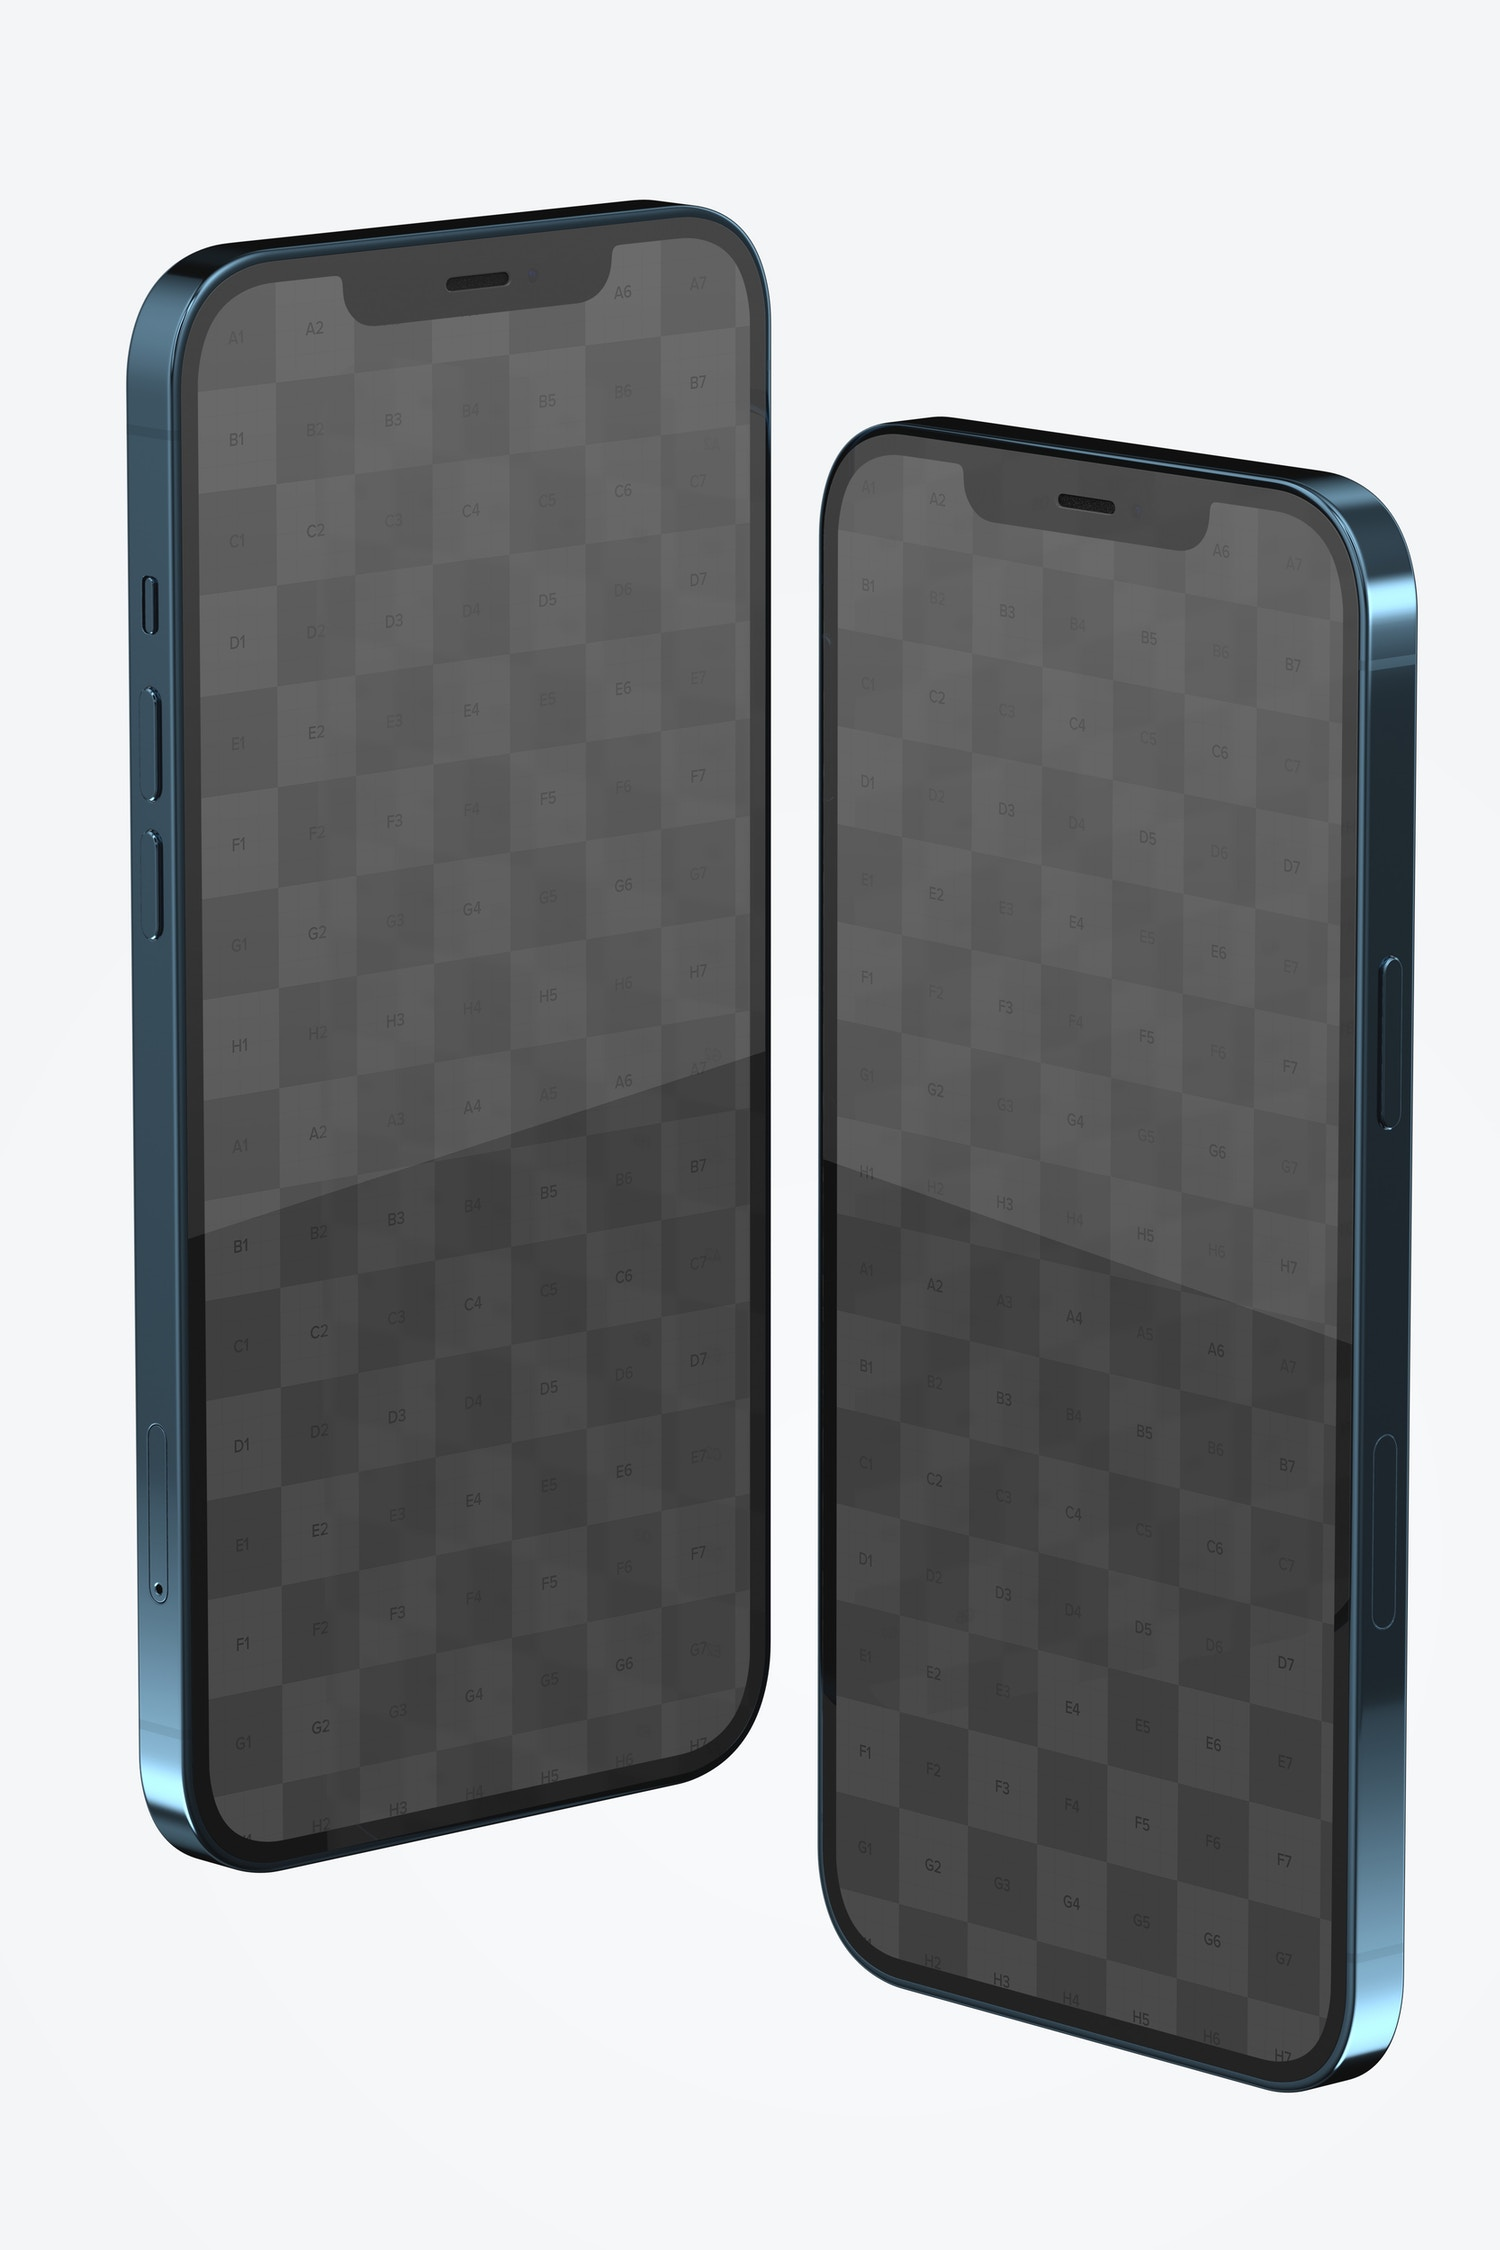 iPhone 12 Mockup, Right and Left Side View